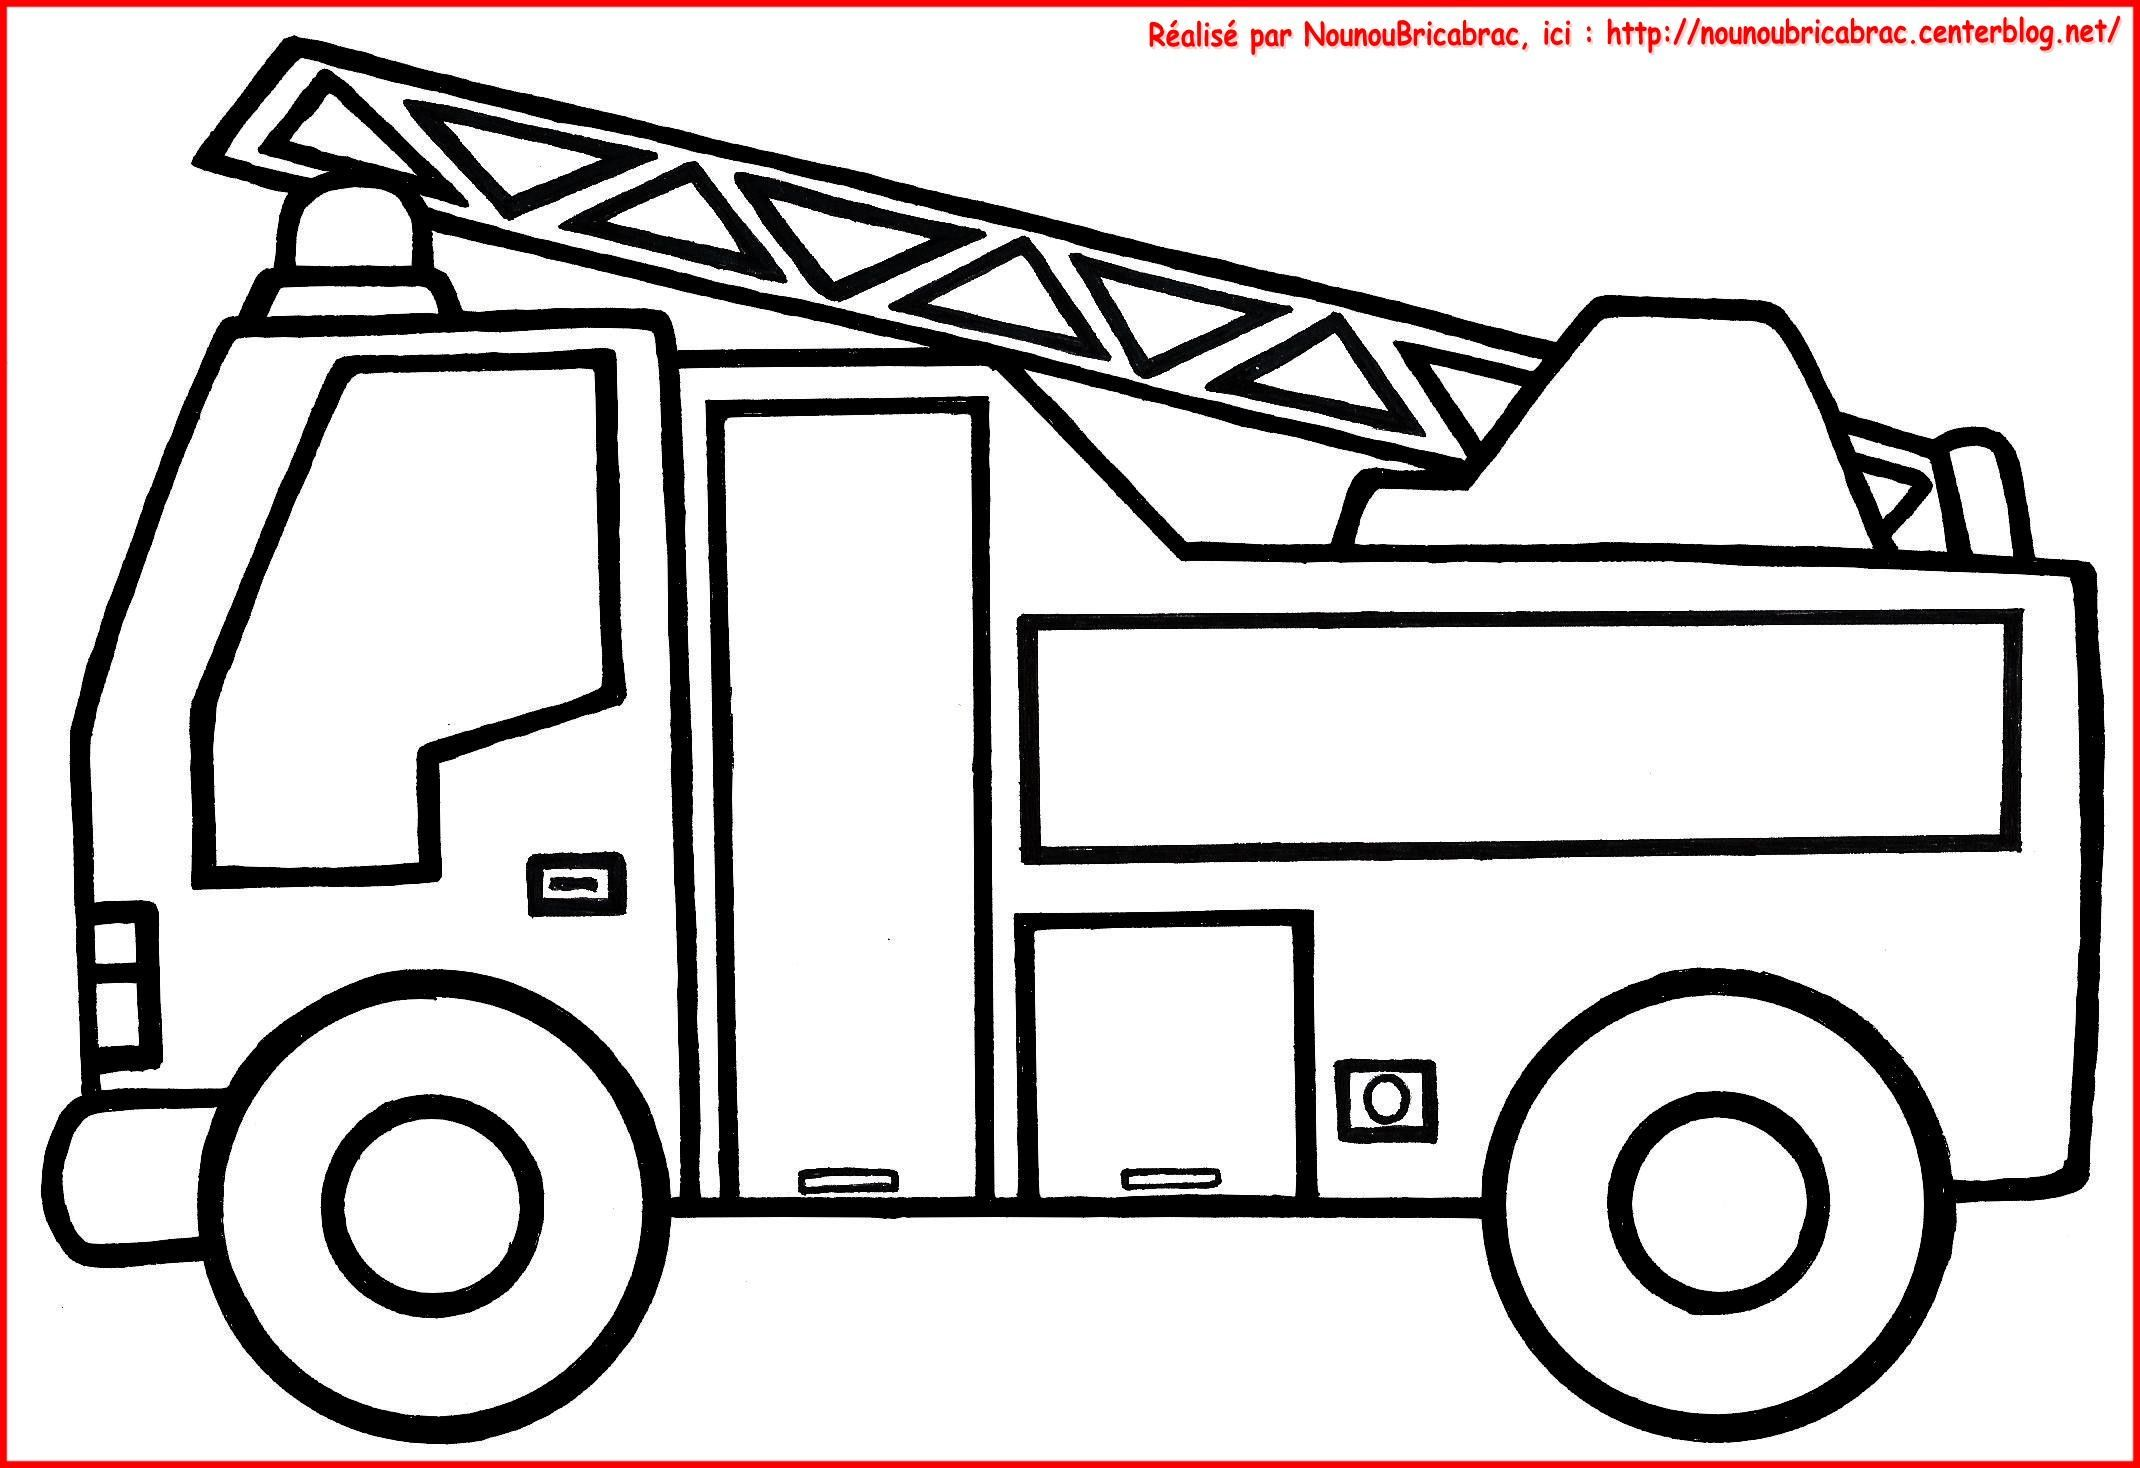 Coloriages transports - Camion a colorier gratuit ...